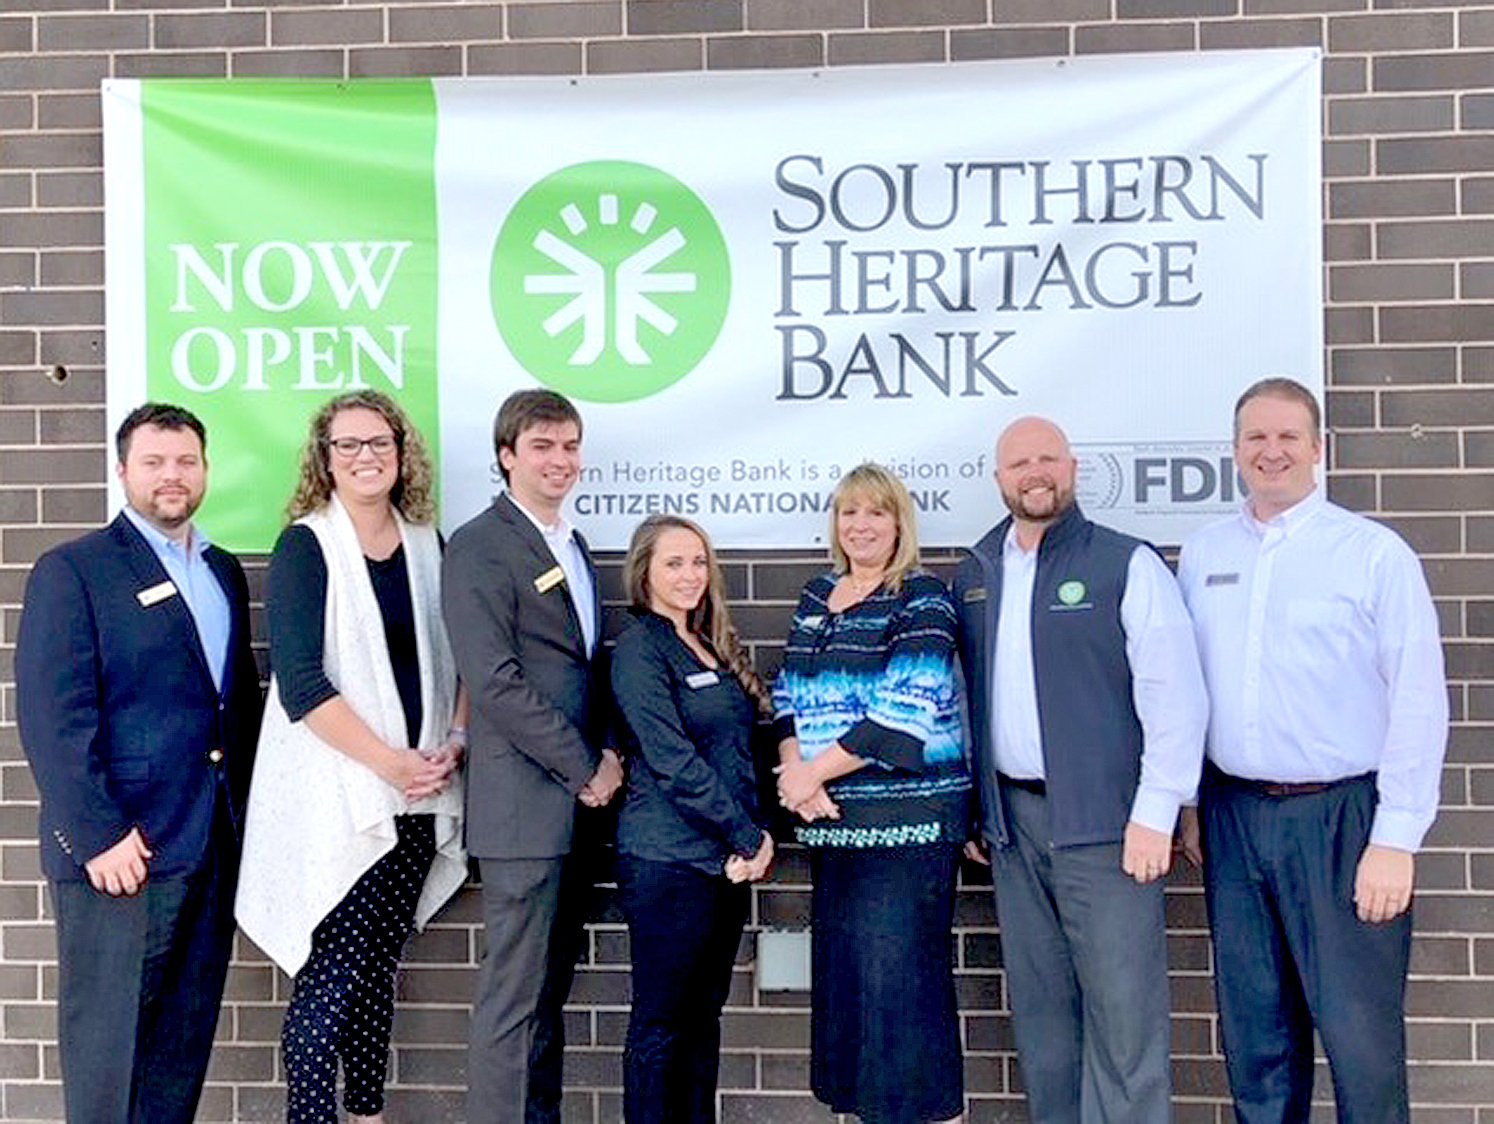 New Southern Heritage Bank The Cleveland Daily Banner